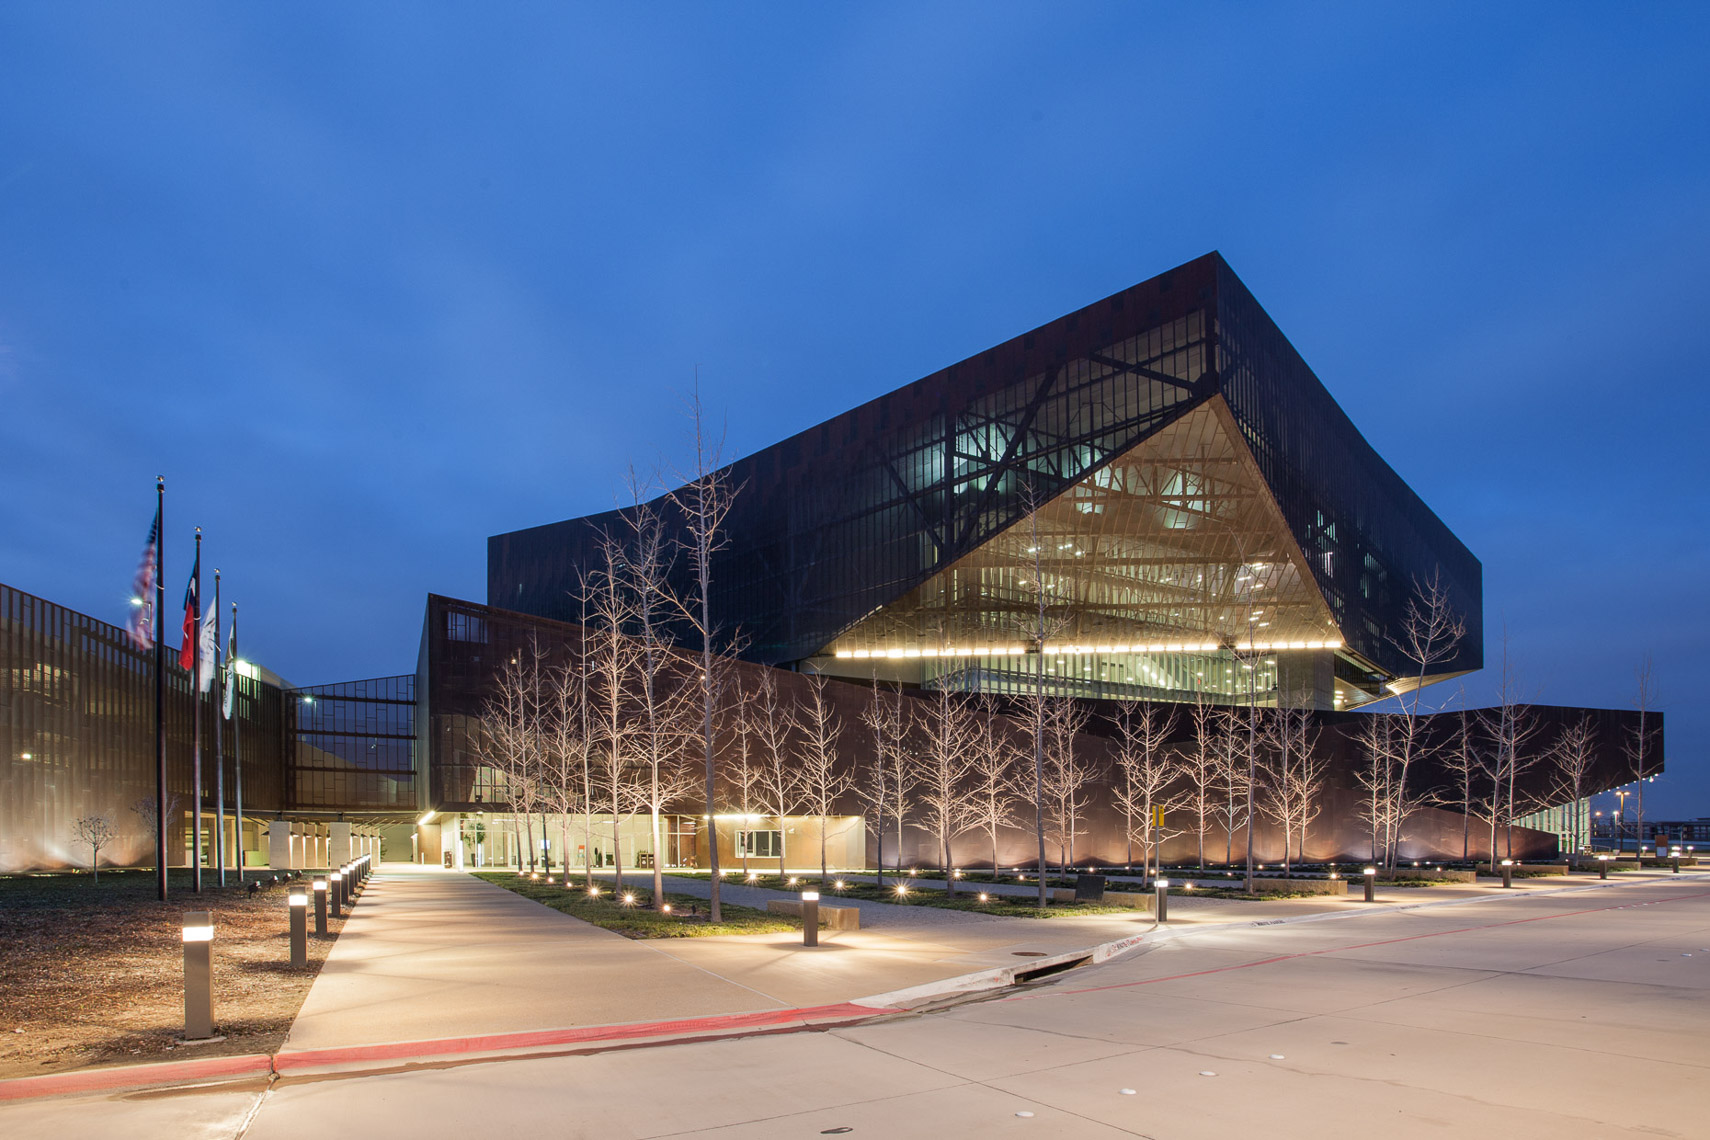 023-3-15_IrvingConventionCenter_Texas199-